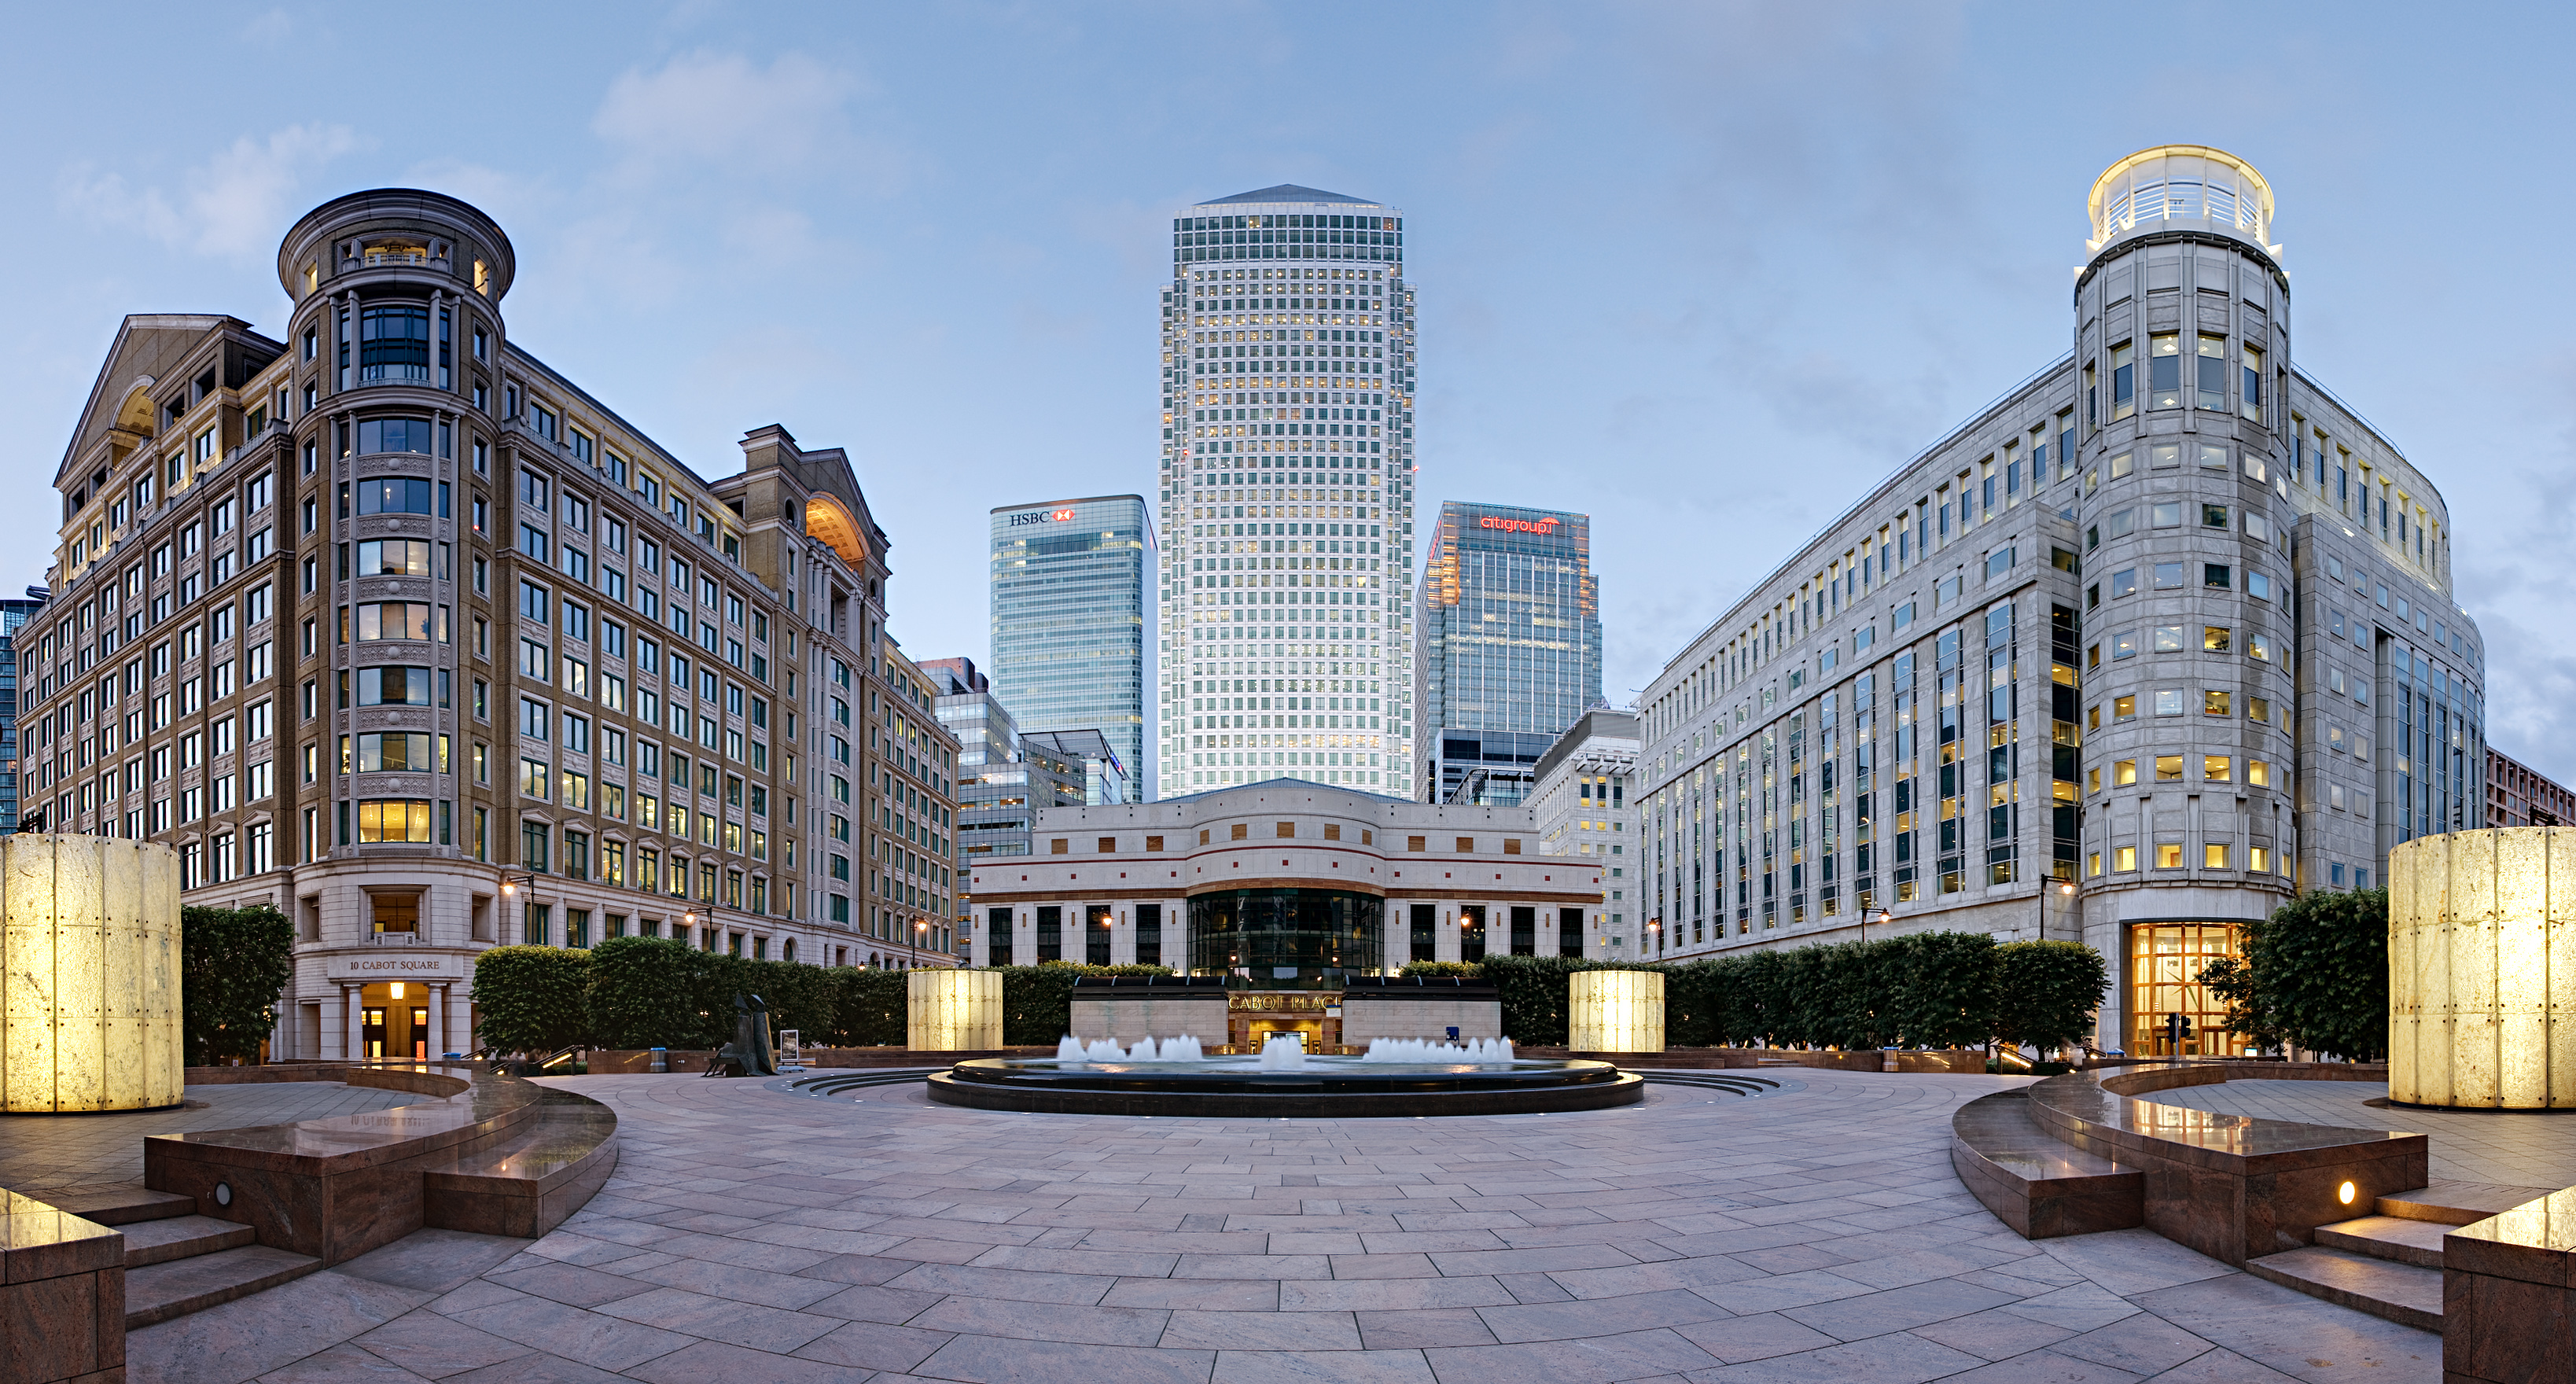 https://upload.wikimedia.org/wikipedia/commons/f/ff/Cabot_Square,_Canary_Wharf_-_June_2008.jpg